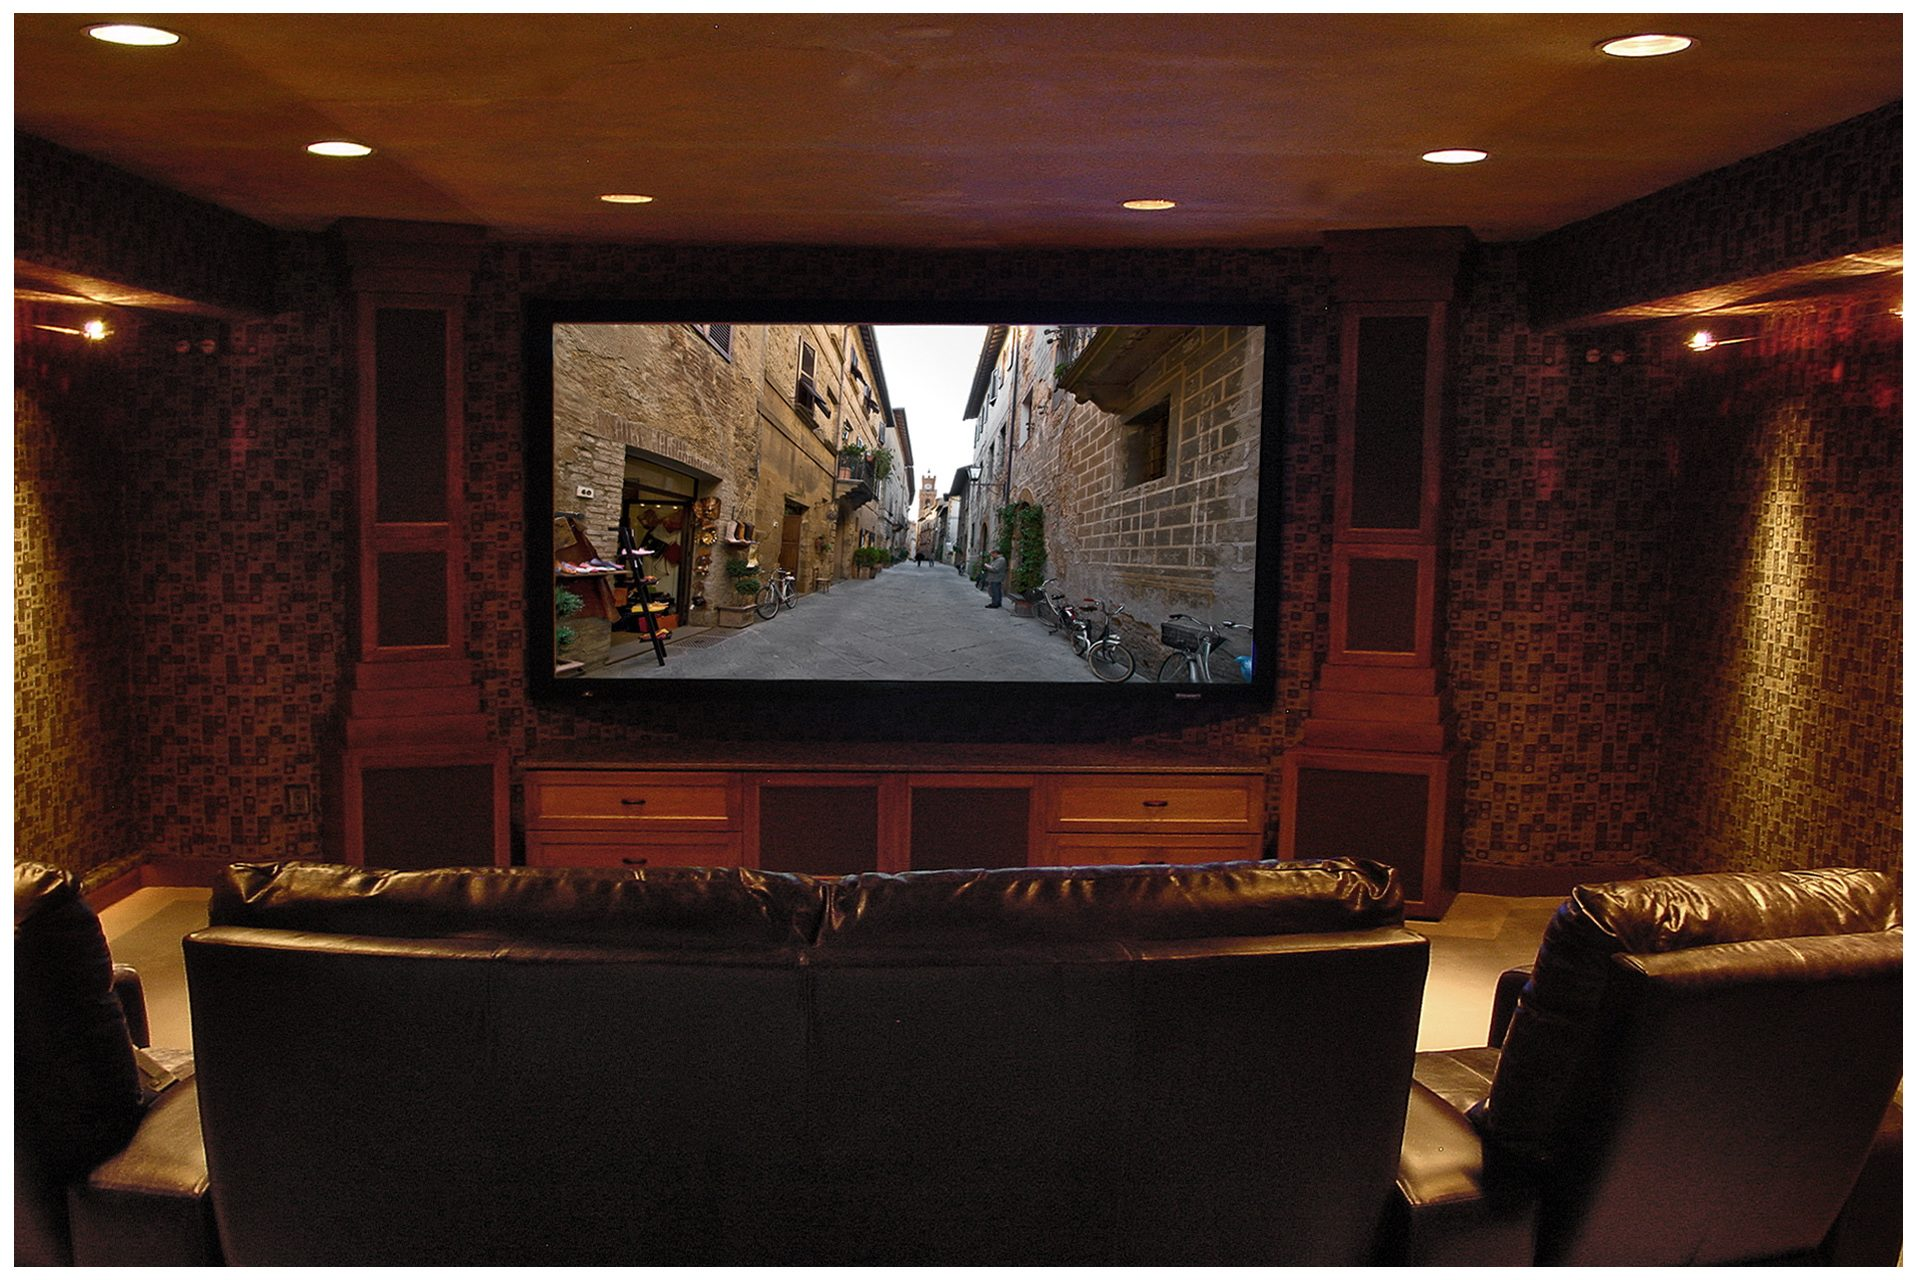 SMALL THEATER IN A DEDICATED ROOMCabinet towers flanking the screen enclosed all front subwoofers and main speakers.  A fixed projector above & behind seating area remained fairly invisible; side speakers were recessed into concrete basement walls flanking the viewing area, and a second pair of in-ceiling surrounds was recessed behind the viewing area. All electronics were placed in a closet space in an adjacent room.